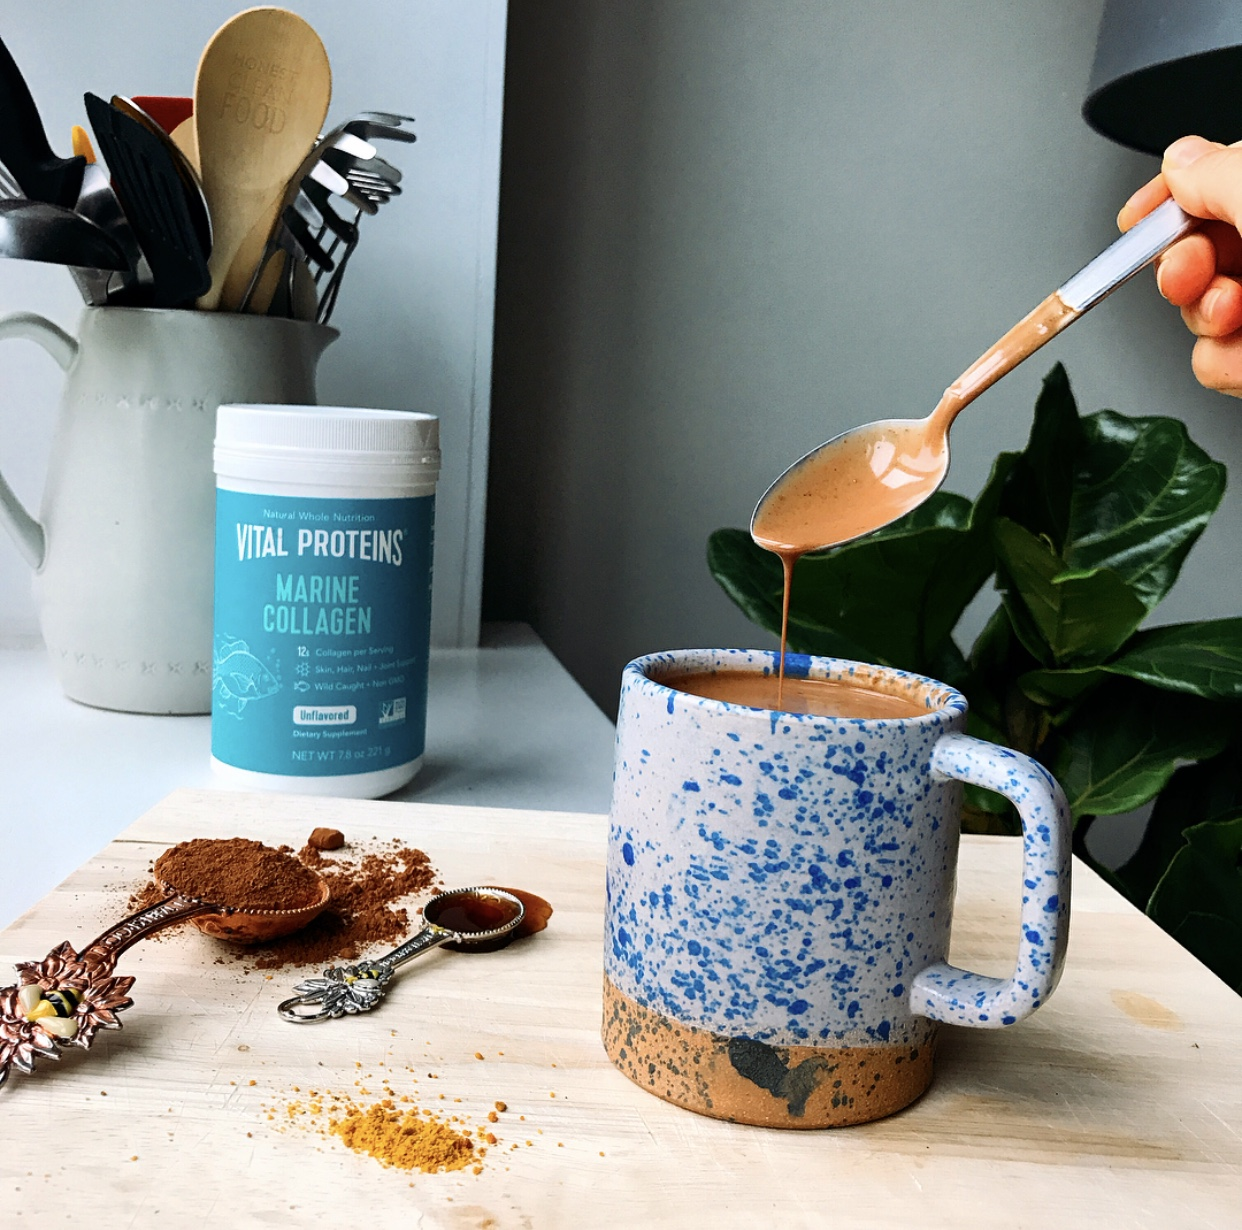 A creamy, decadent gut healing hot chocolate that you will want to make all winter long to keep you warm and cozy.